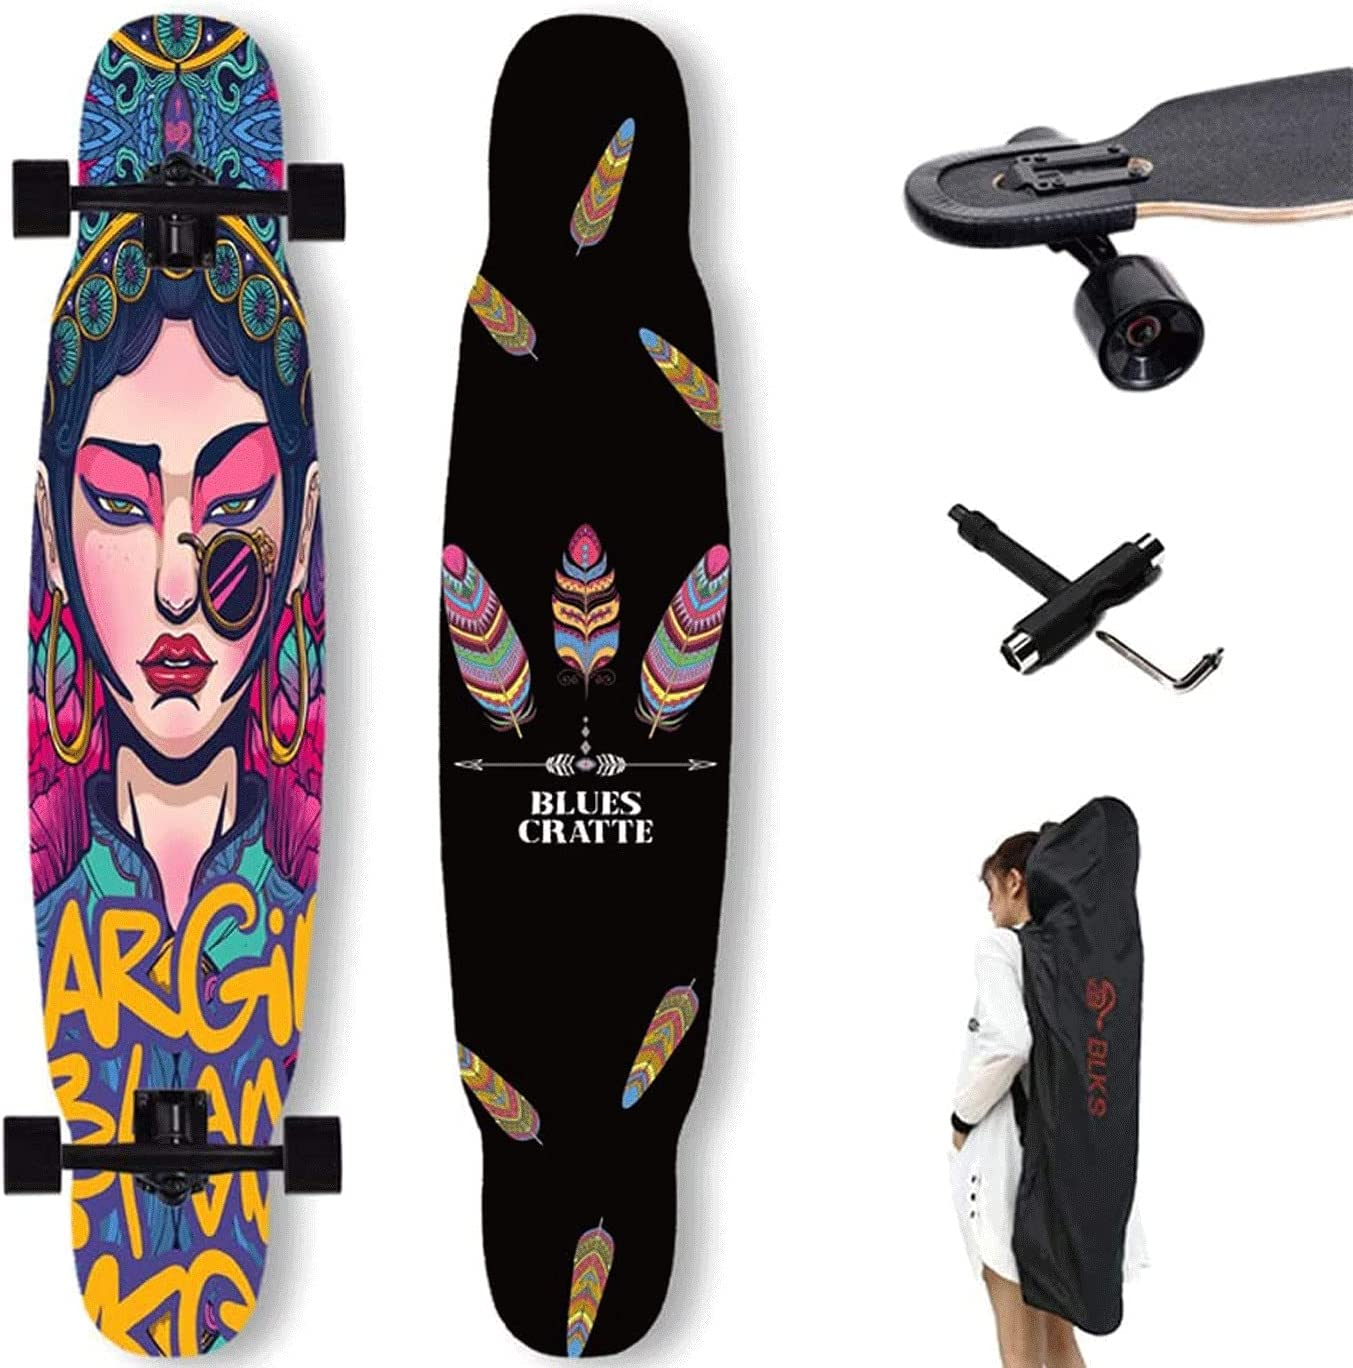 EEGUAI 42 Inch Skateboard Longboard Topics on TV 7 - Layer Sales of SALE items from new works Maple Ska Complete